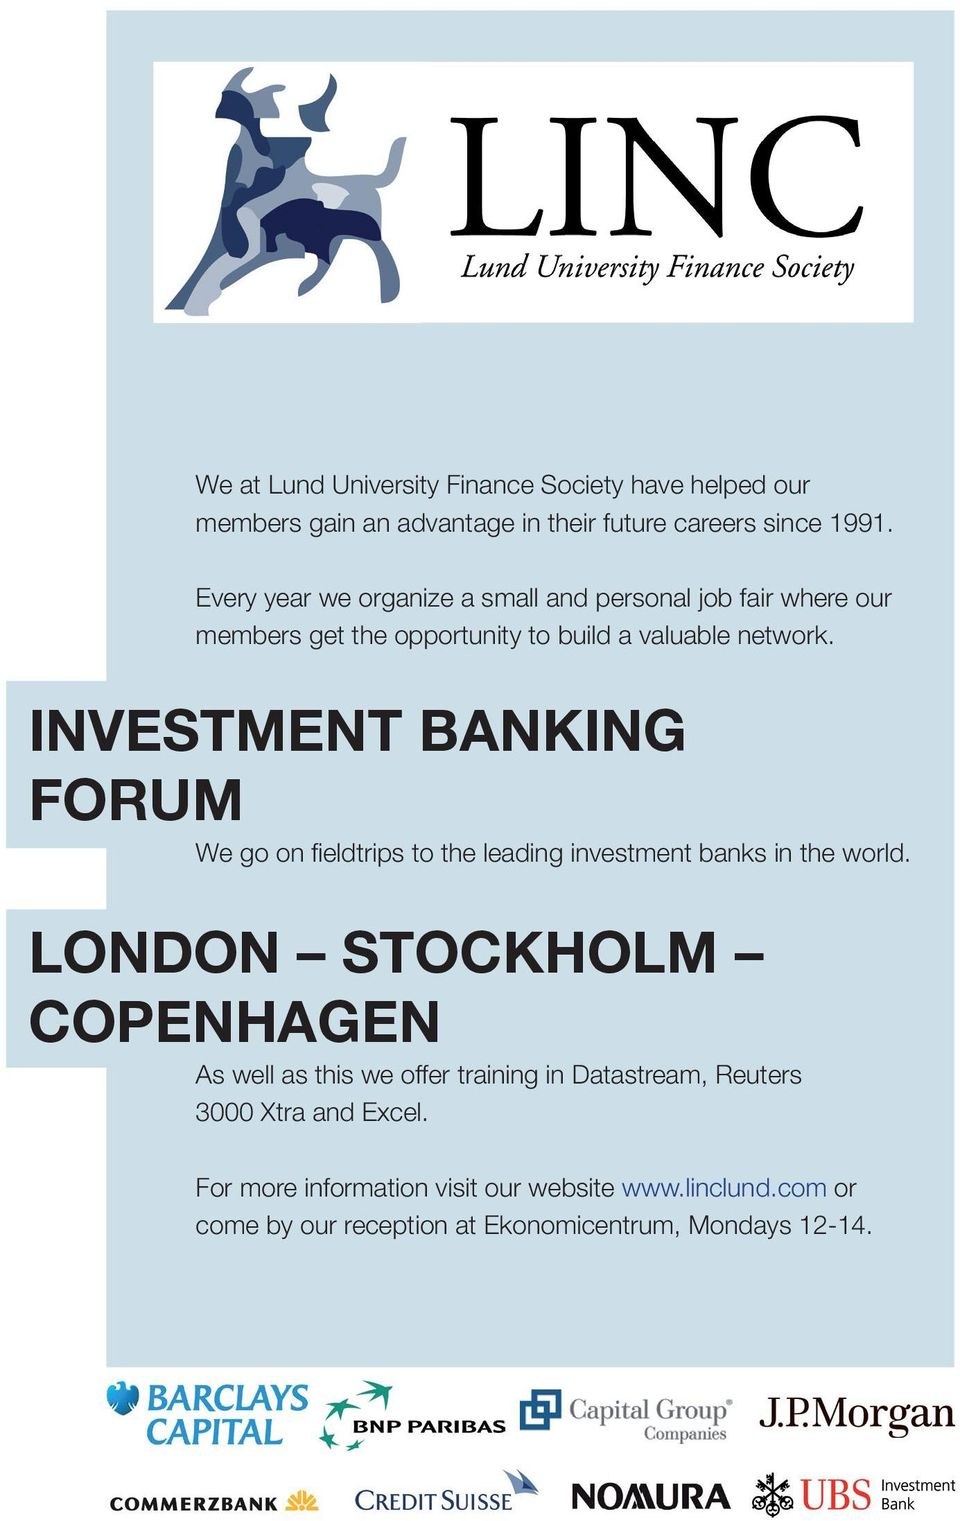 INVESTMENT BANKING FORUM We go on fieldtrips to the leading investment banks in the world.